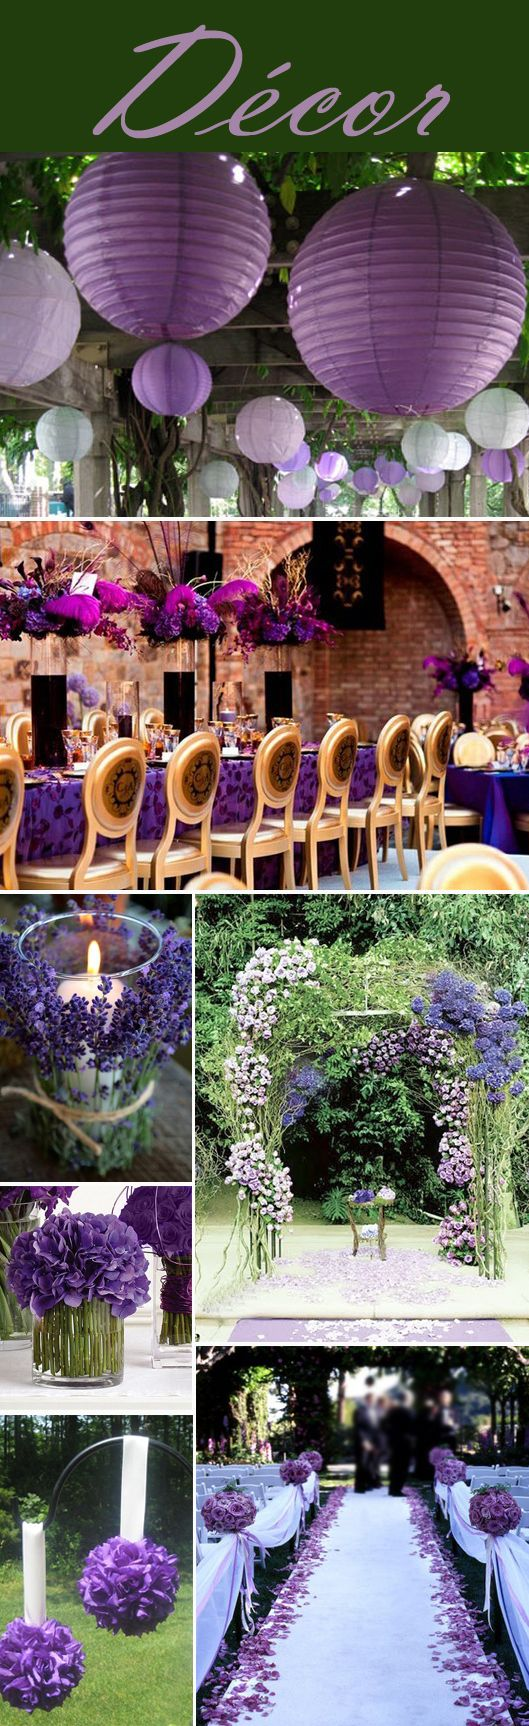 Your Wedding Color –Purple and green are a perfect combination for a spring or summer wedding.